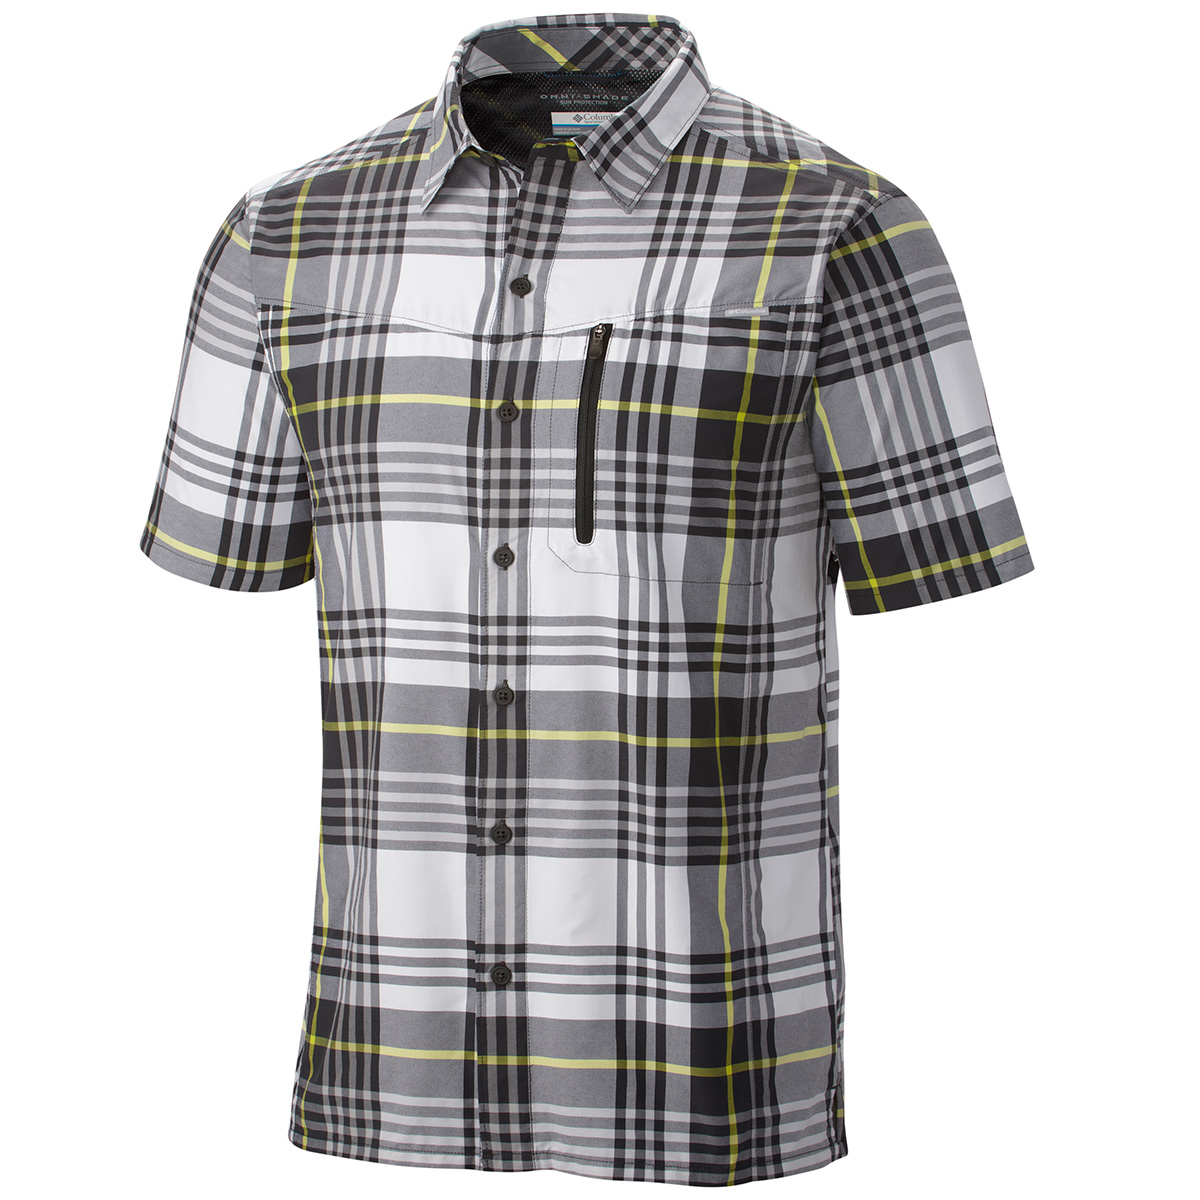 Columbia silver ridge plaid short sleeve shirt fishing Short sleeve plaid shirts